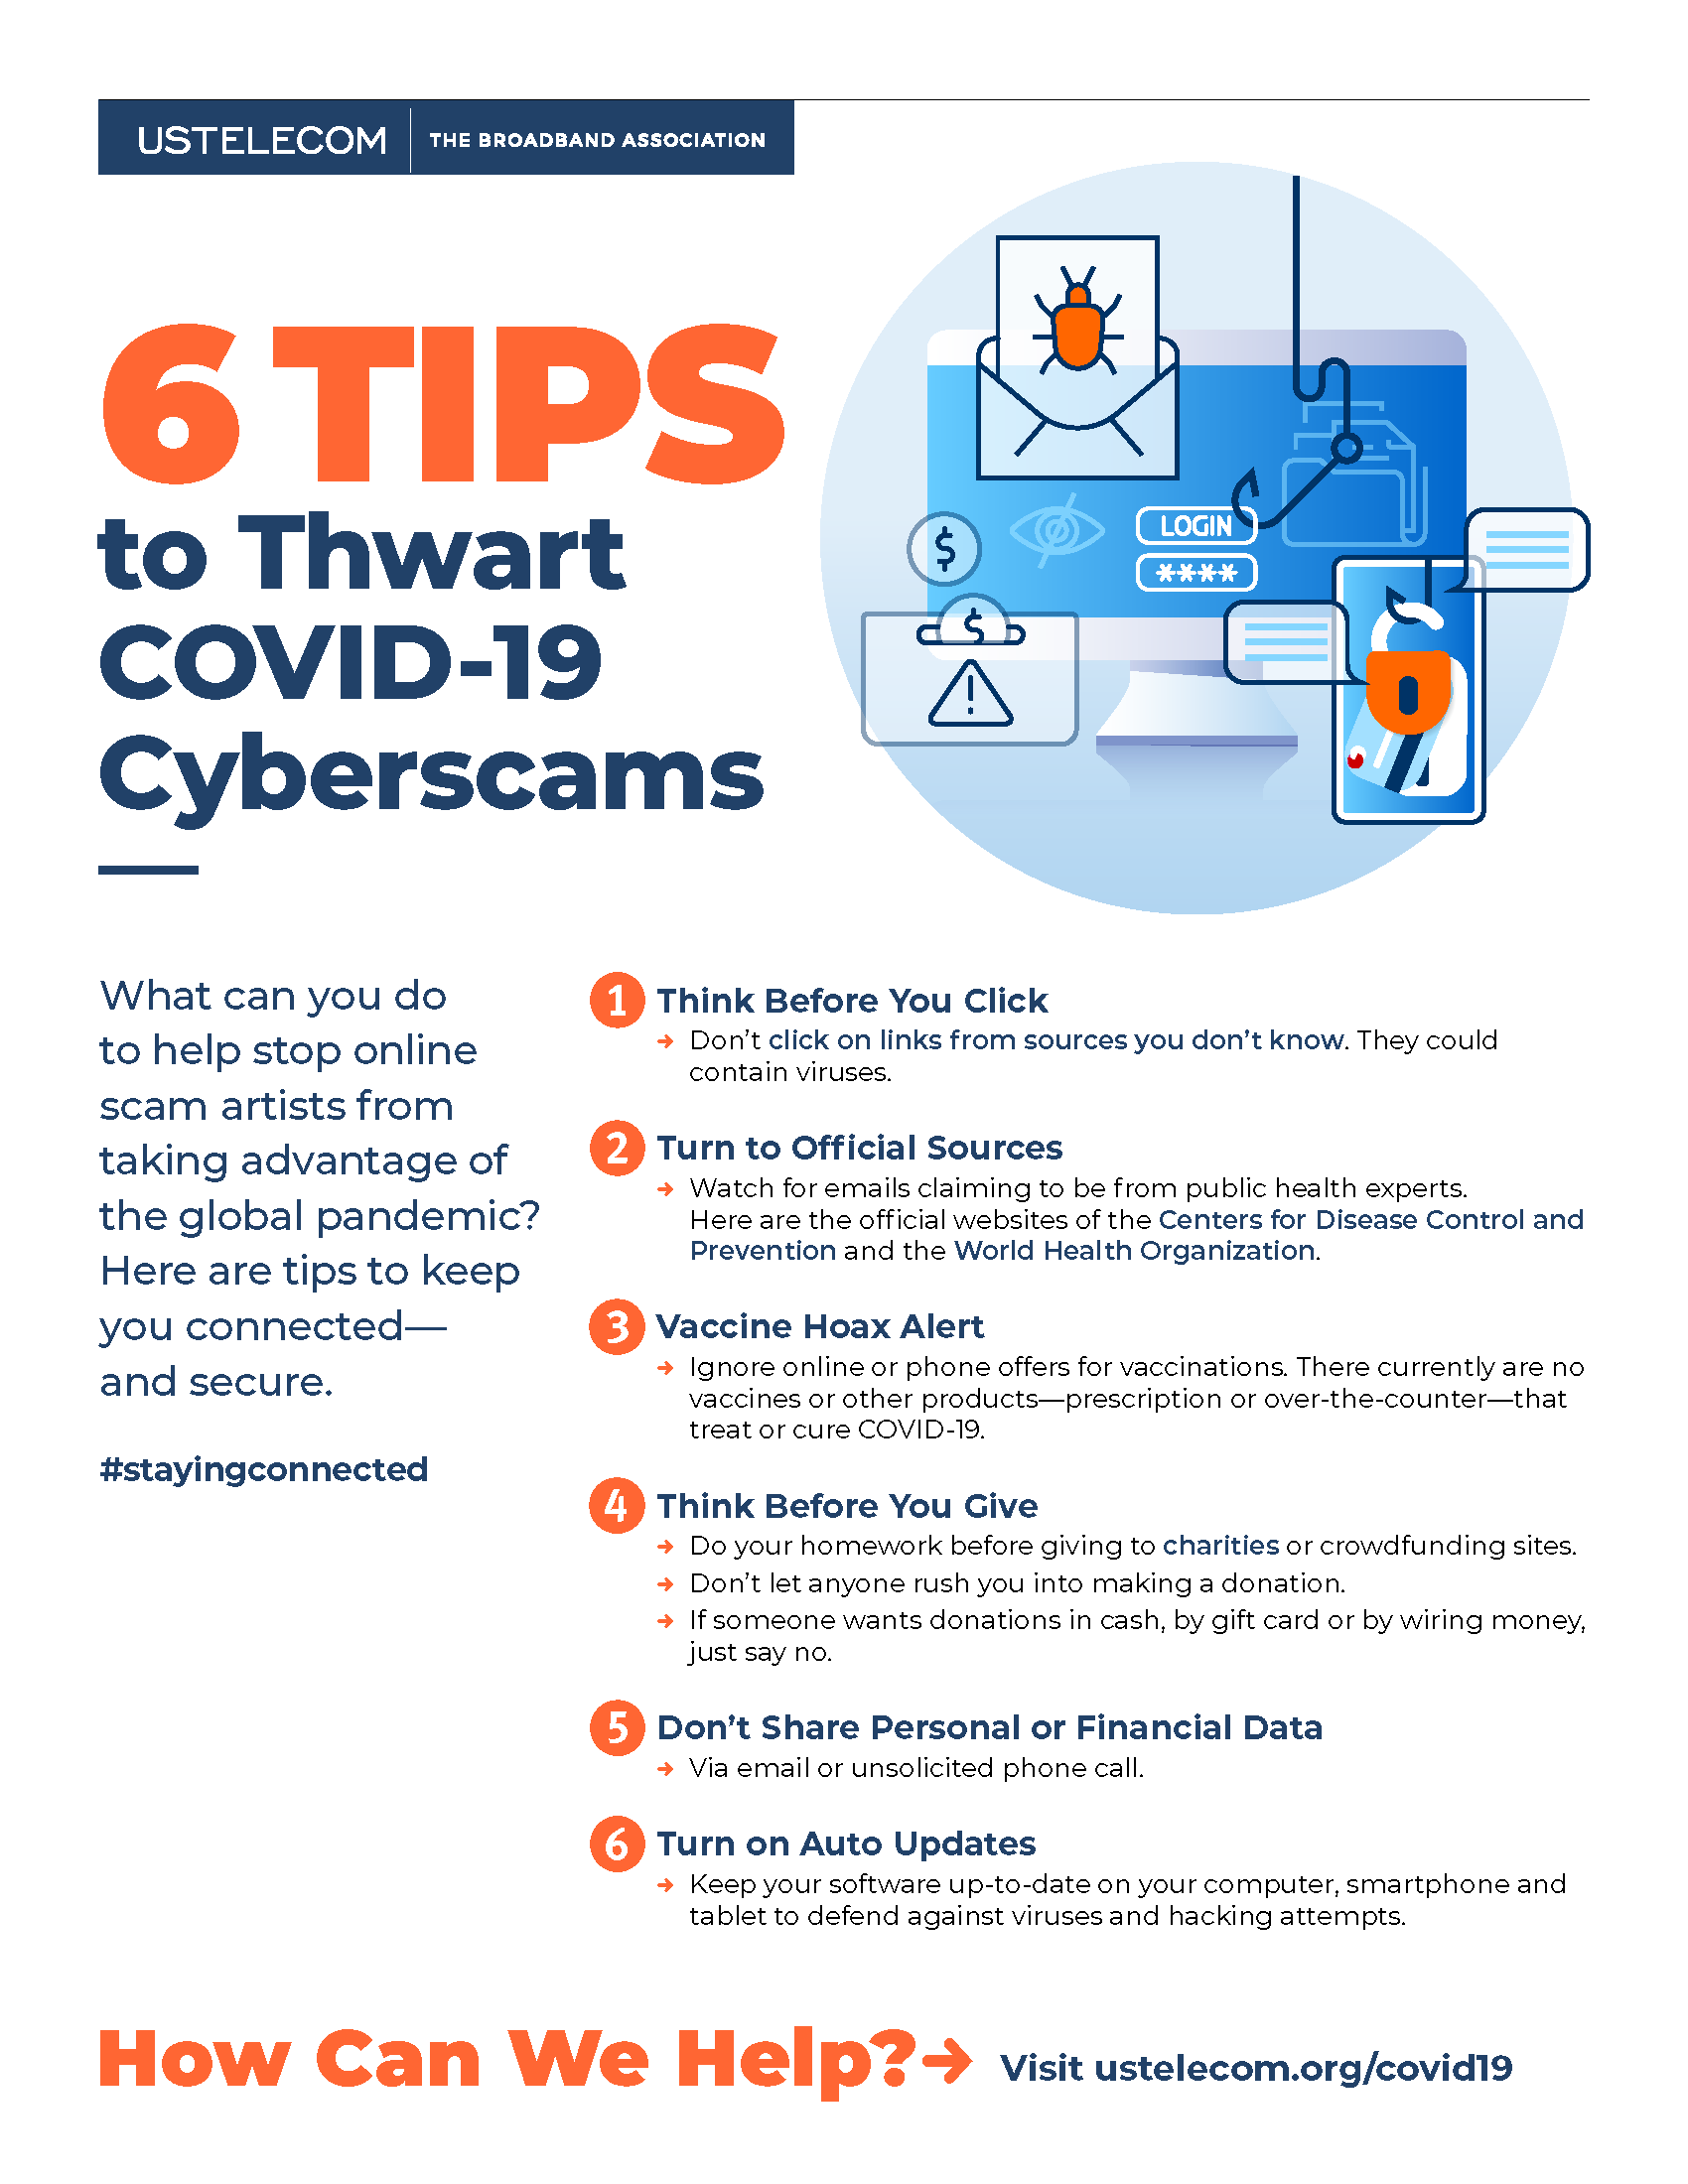 6 Tips to Thwart COVID-19 Cyberscams